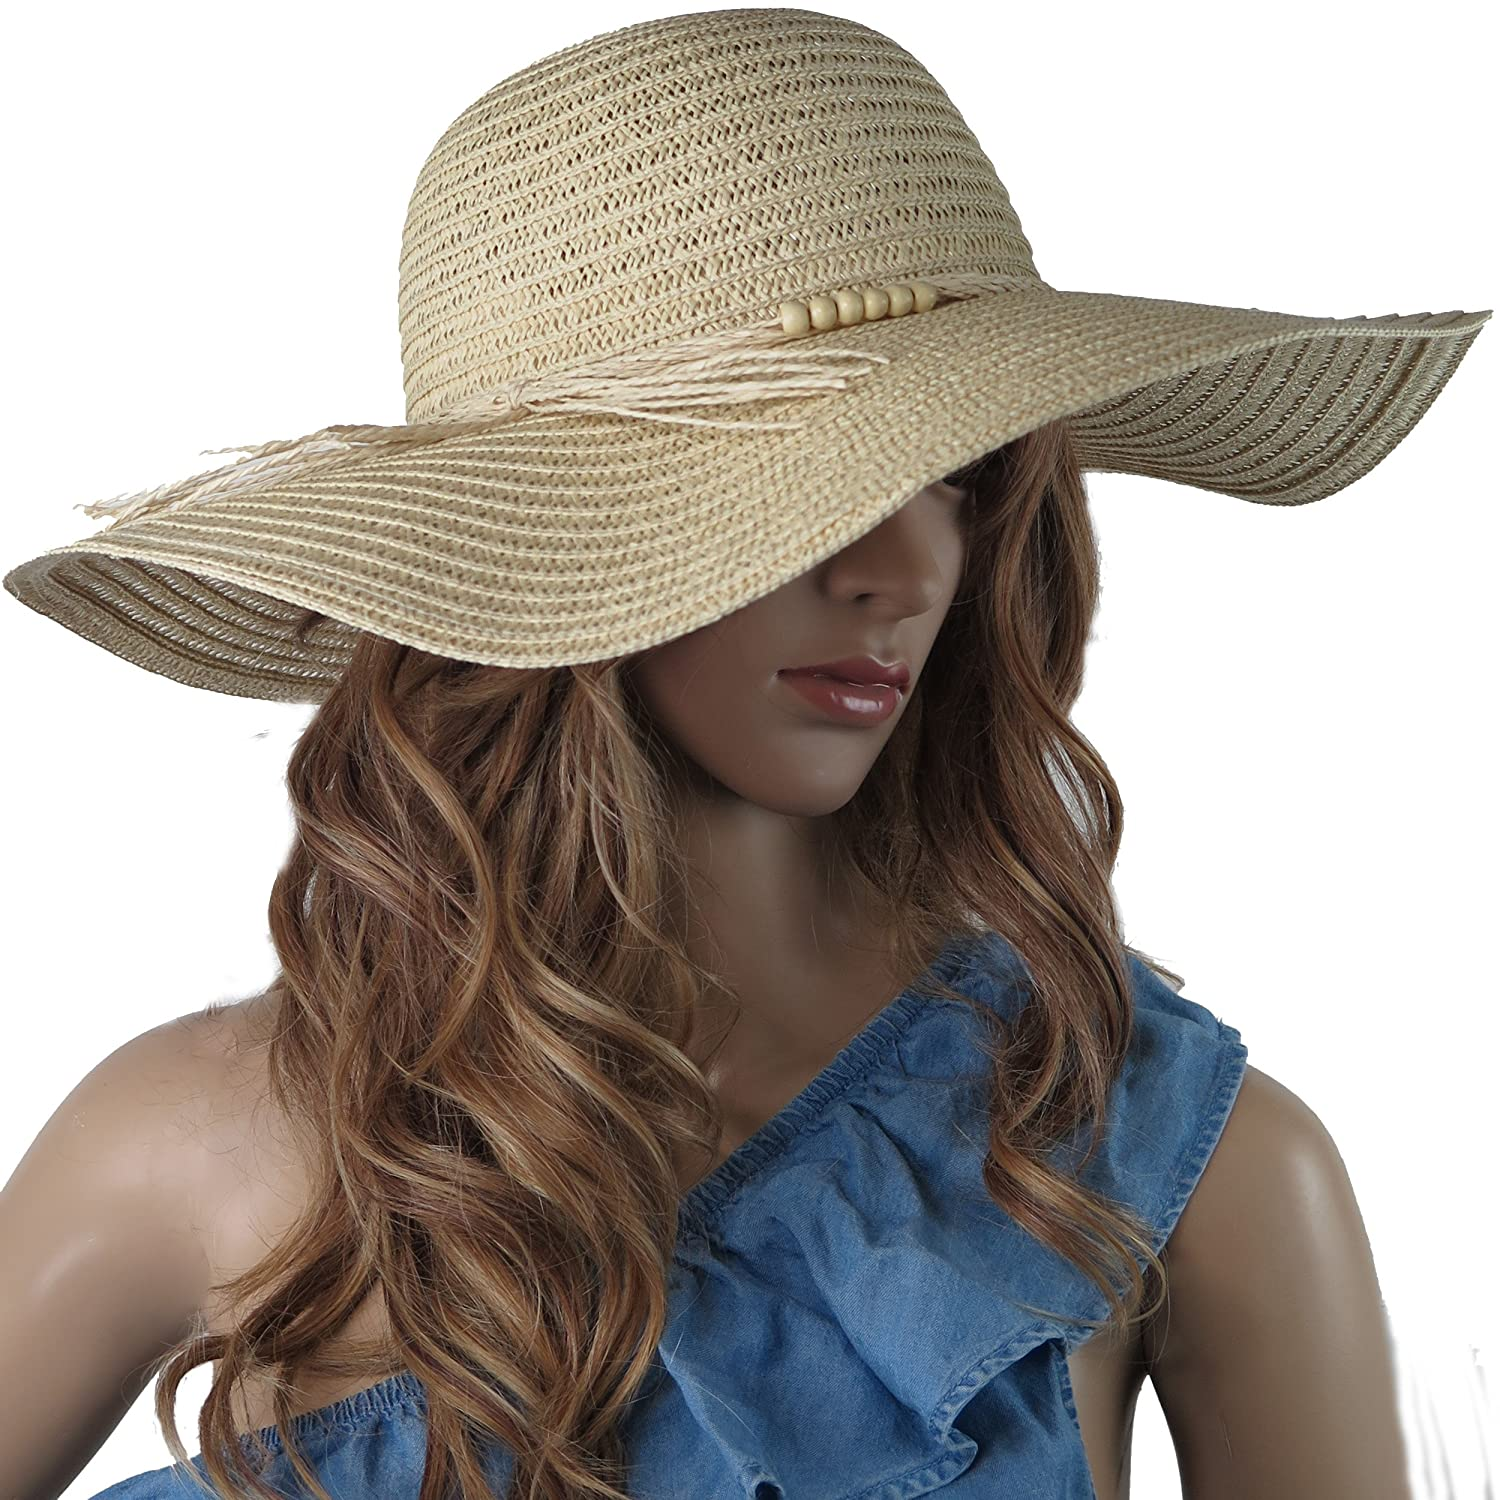 17dcf732c1a Debra Weitzner Beach Straw Floppy Hat for Women Wide Brim - Sun Protection  - Packable Foldable Summer Sun hat for Ladies - Beige at Amazon Women s  Clothing ...